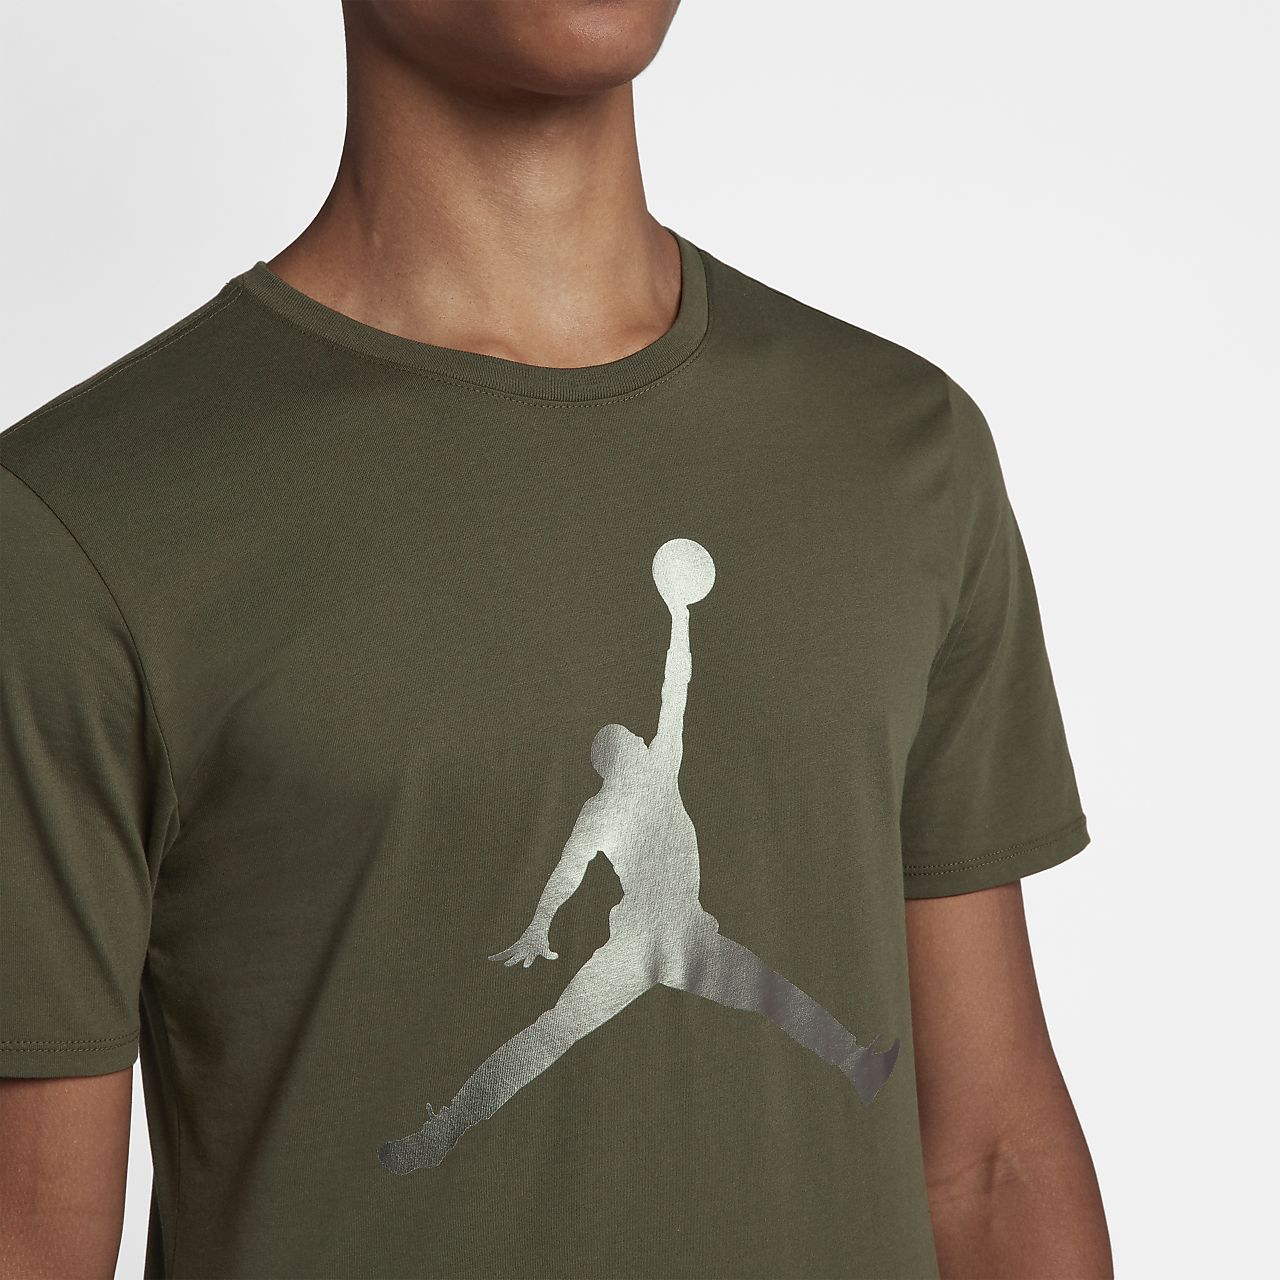 3db6a8b7c16589 Jordan Lifestyle Iconic Jumpman Men s T-Shirt. Nike.com CA